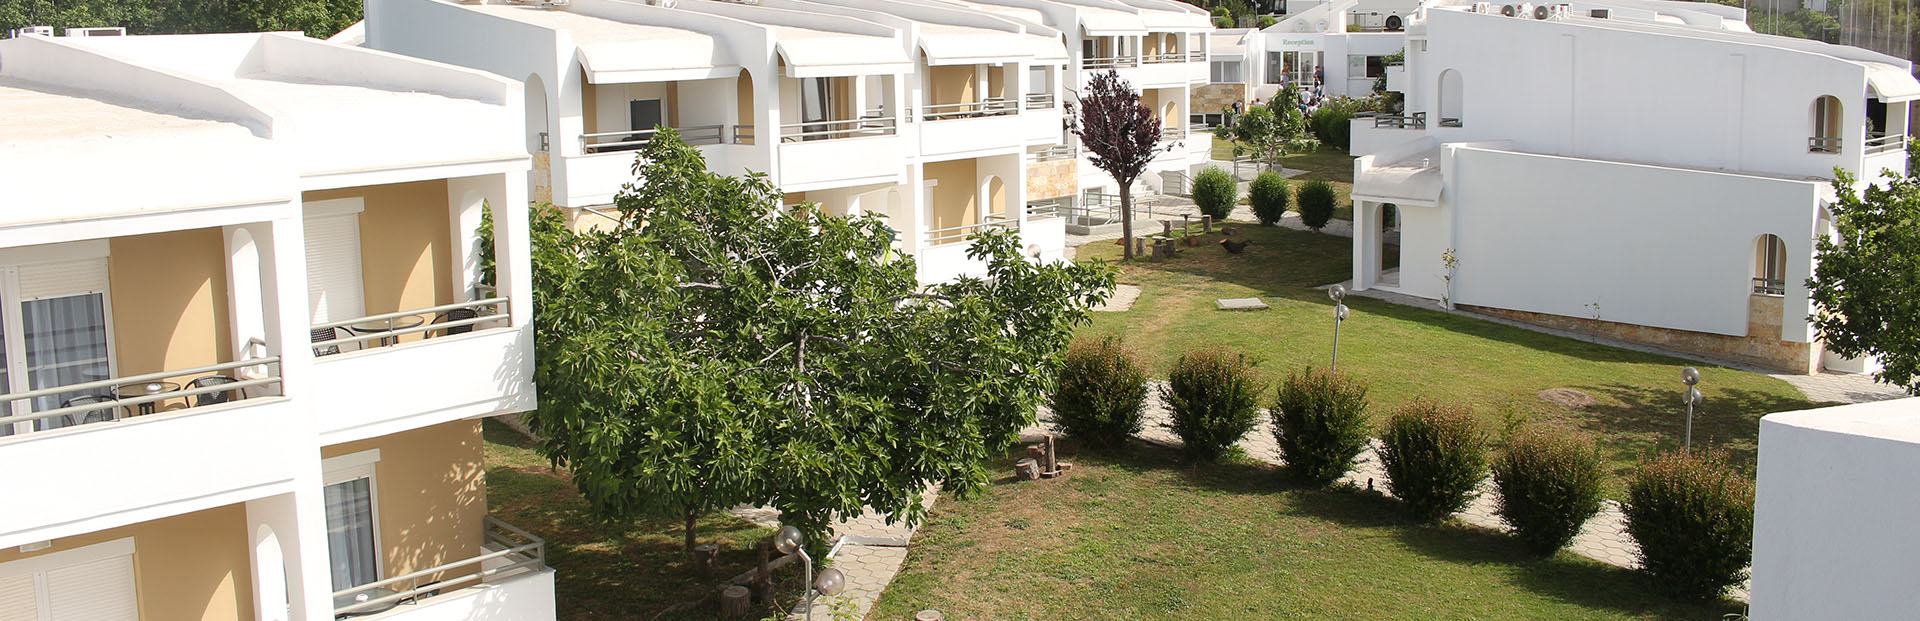 hotels in halkidiki - Skion Palace Beach Hotel